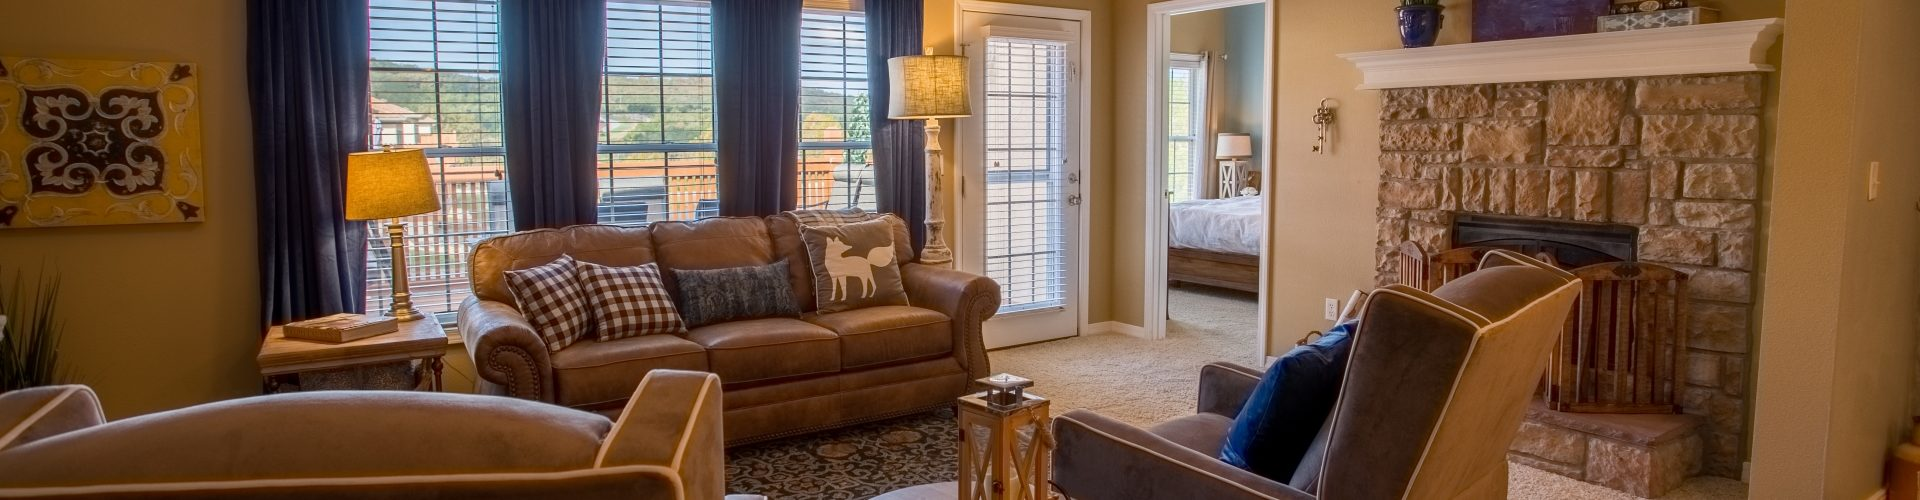 3 Bedroom Condos in Branson, Missouri